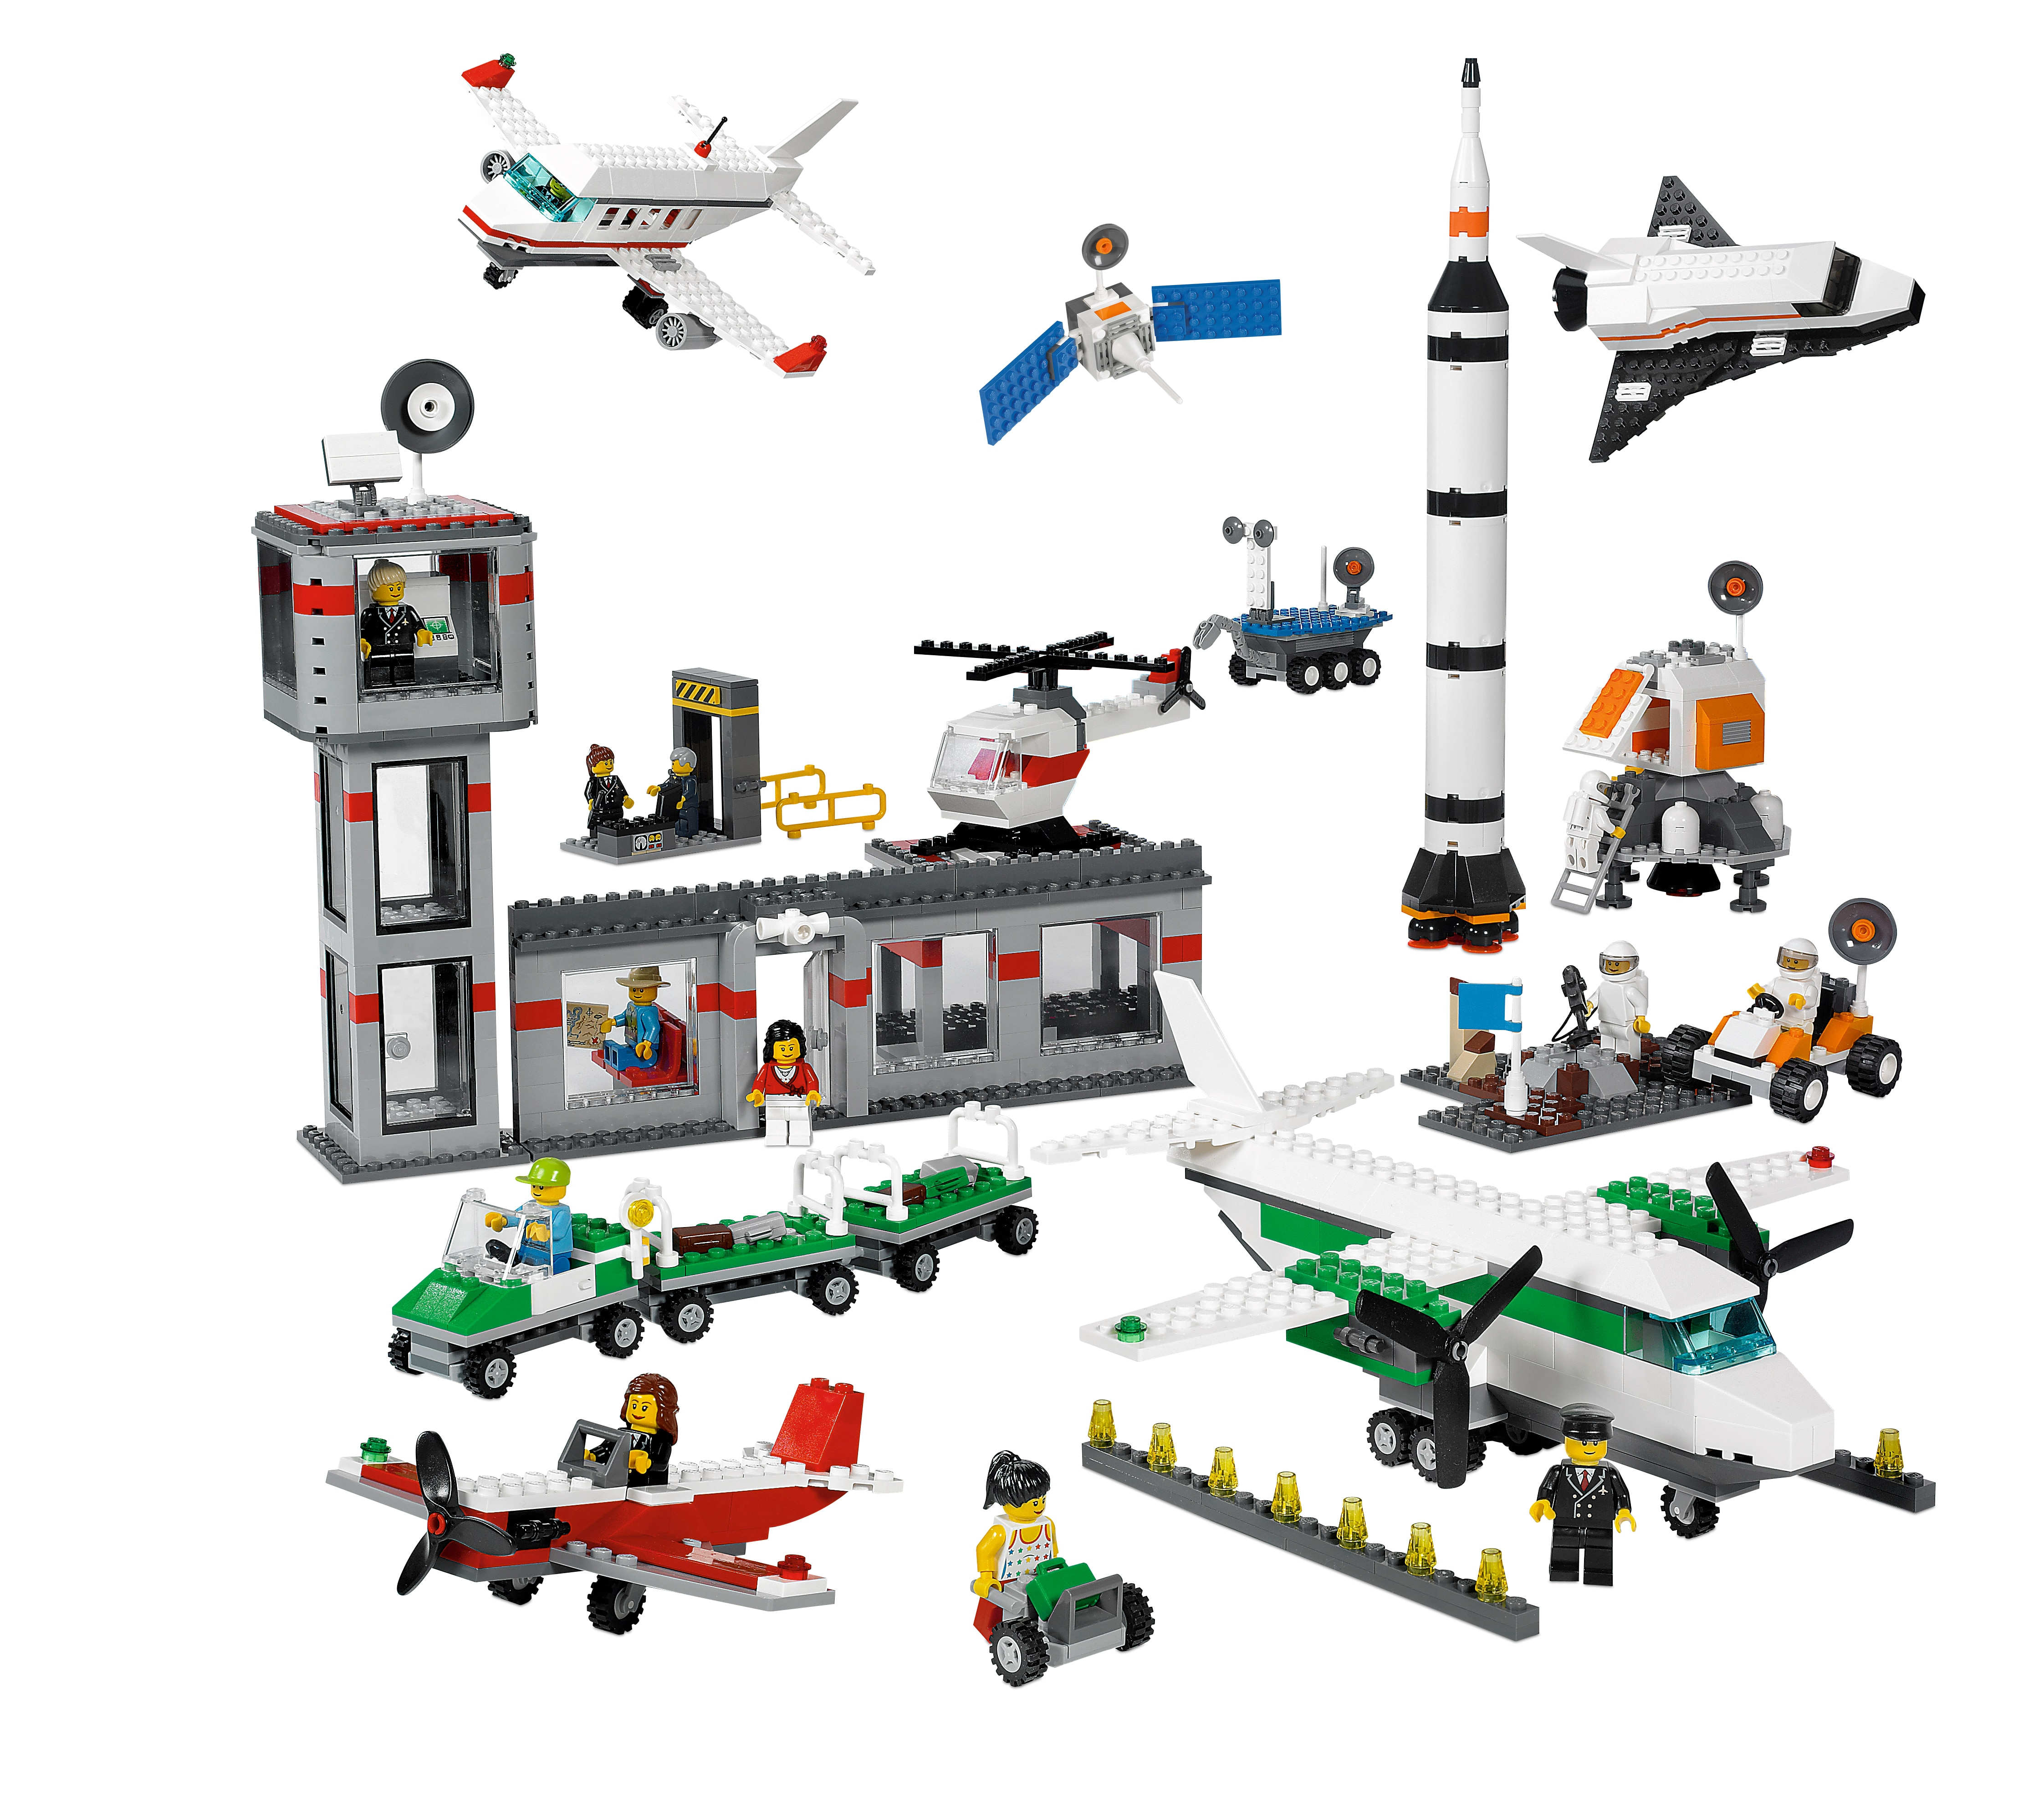 1,176 Pieces LEGO Education Space and Airport Set 9335 4579792